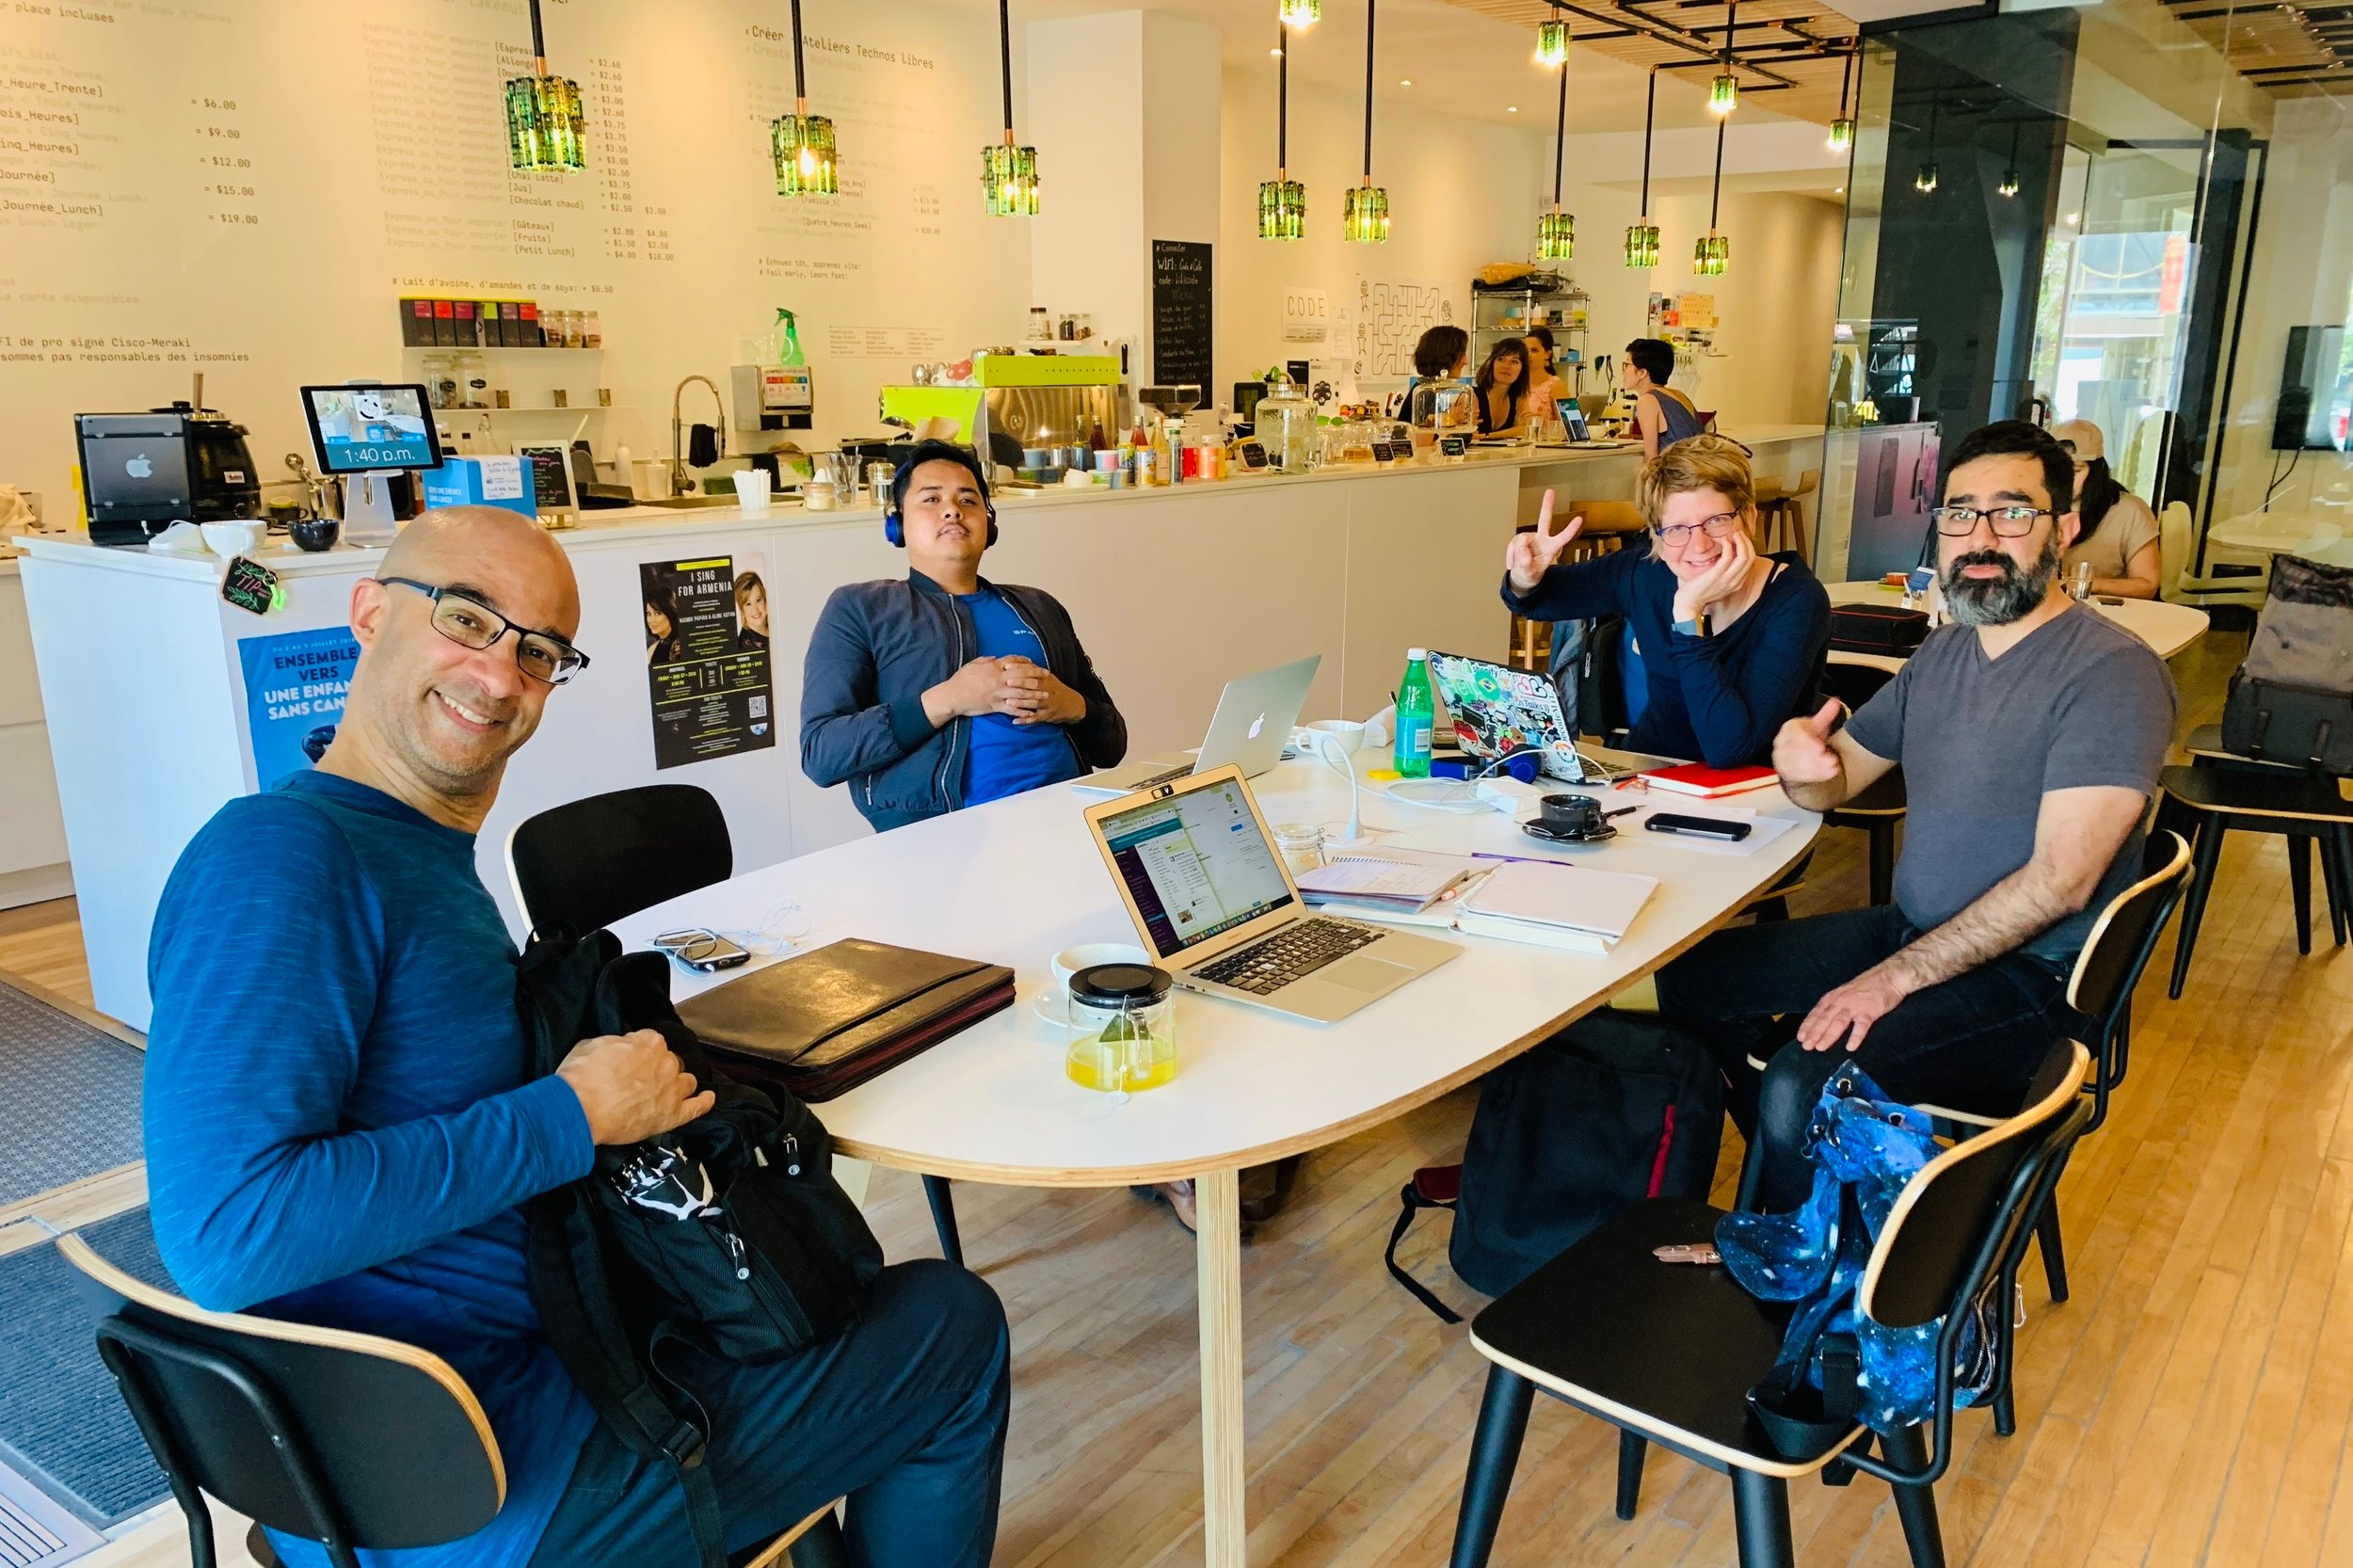 buy a cup of coffee for a coder - We host daily coffee and code sessions. On a typical week we host around 30 coders from all walks of life. You could help us eliminate the economic barrier of coming to a coffee shop to code by buying a coffee for a coder.